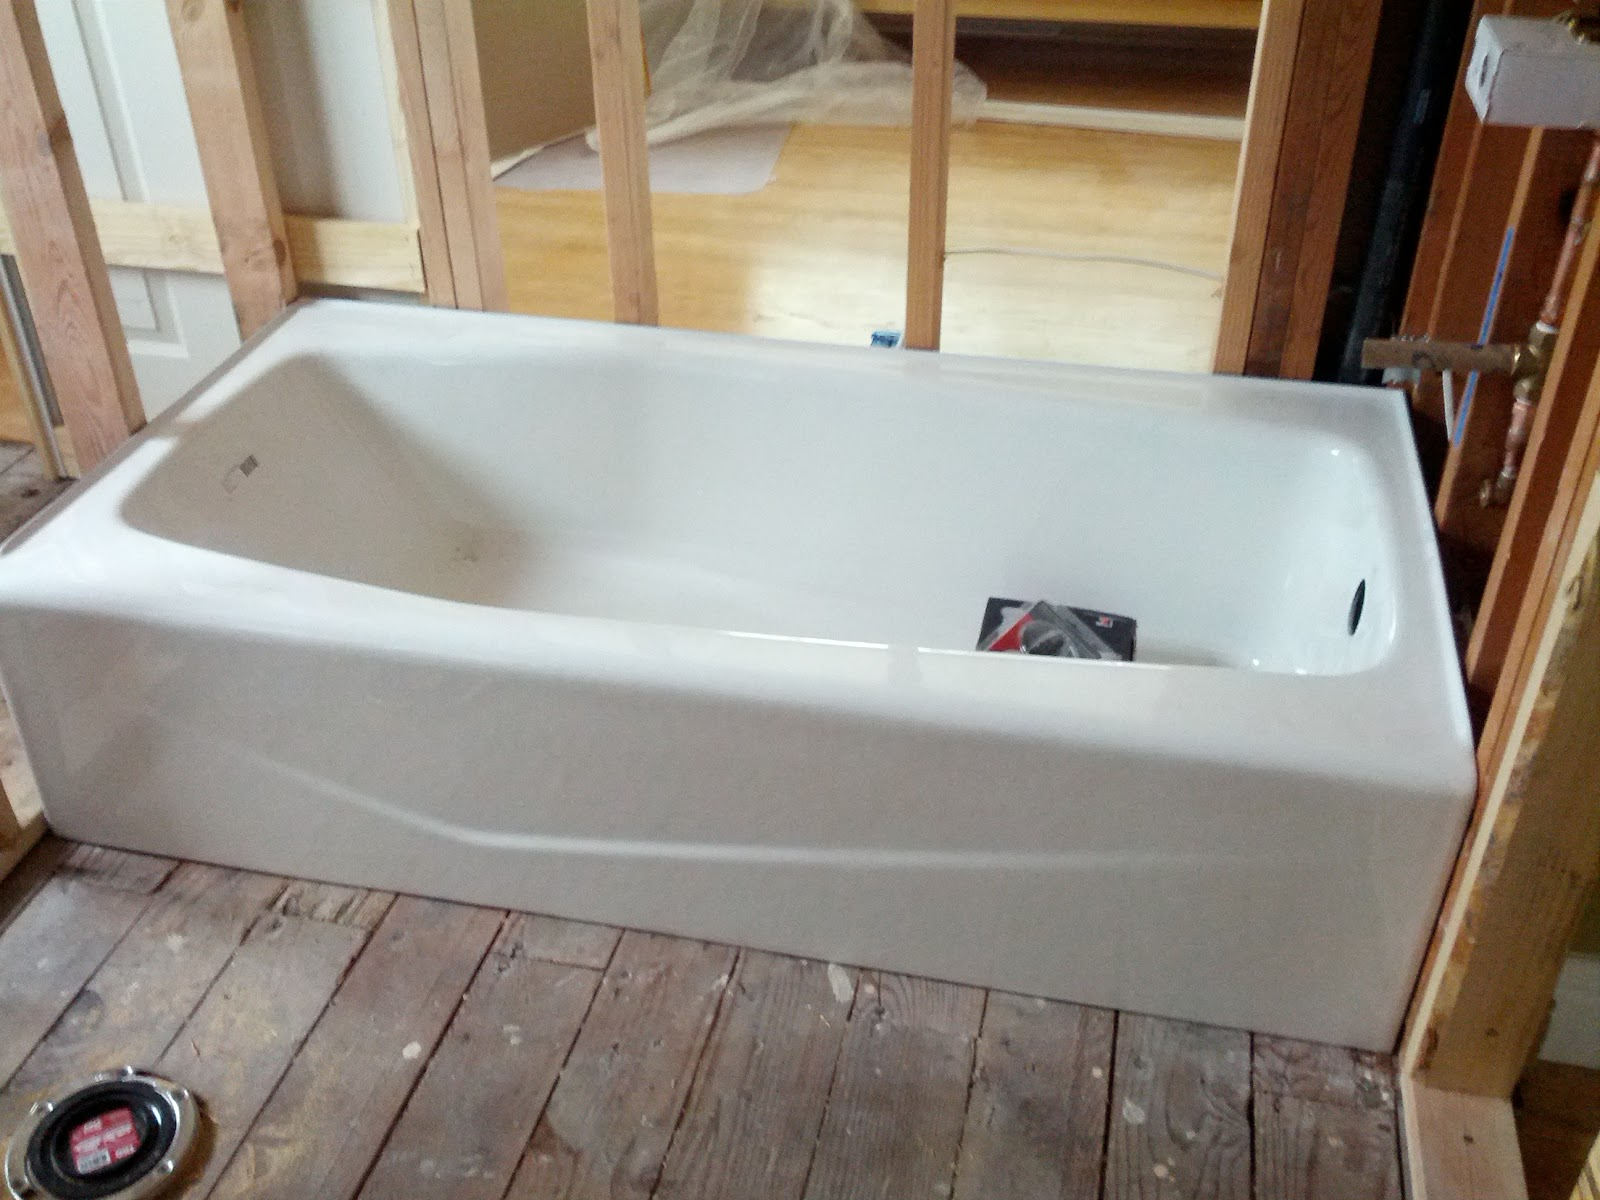 Fine Bathtub Reglazing Thick Reglazing Clean Refinish Bathtub Cost Bath Reglazing Youthful Plumbing A Bathtub OrangeHow To Repair Bathtub Little Red House: Rough In Inspection: Check!